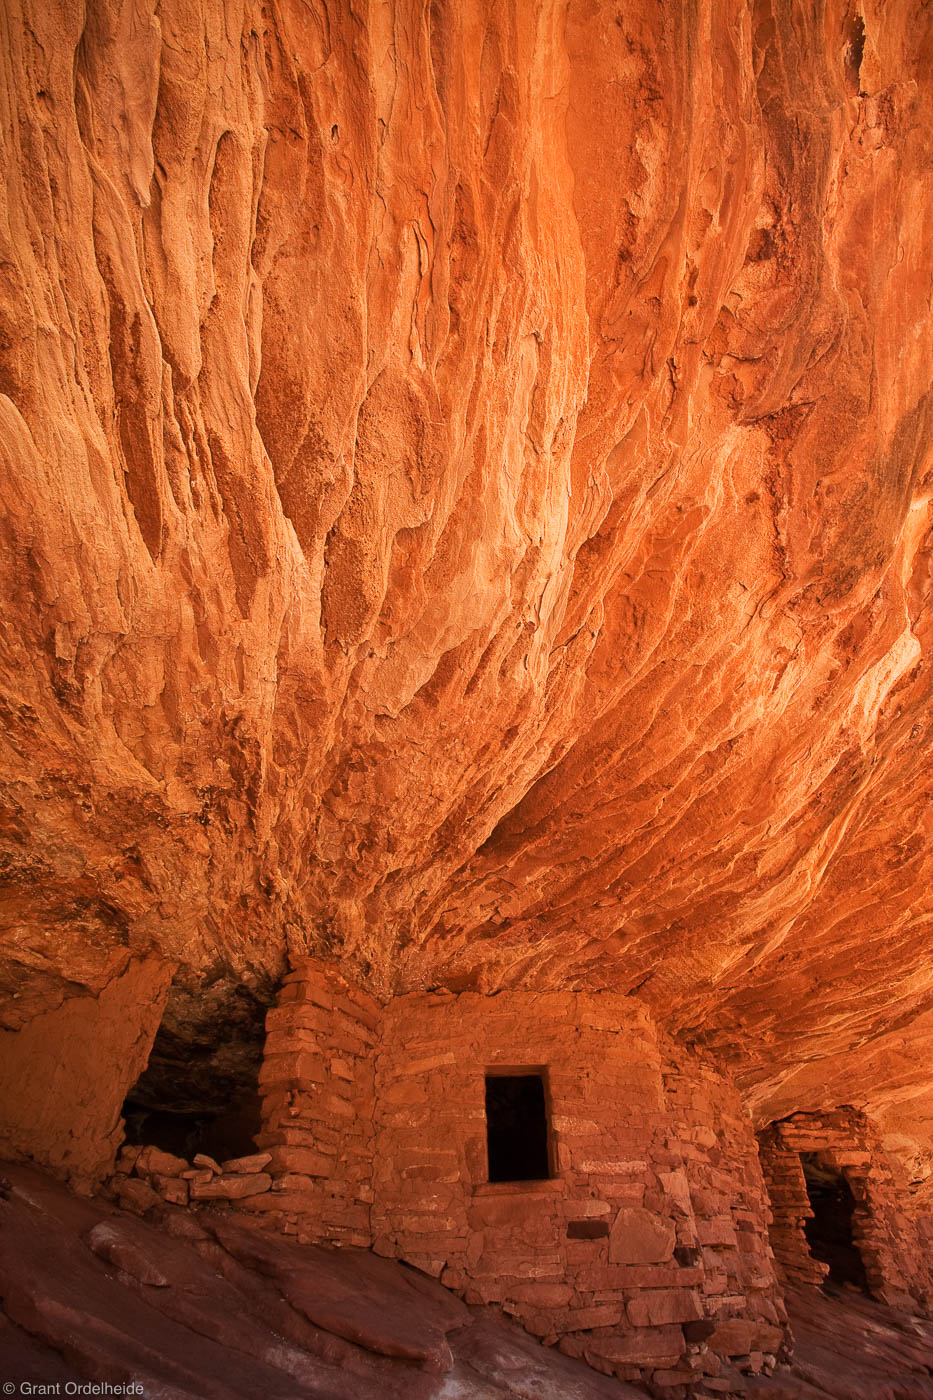 house of fire, mule canyon, utah, anasazi, ruin, photogenic, flames, light, reflected, ceiling, ancient, photo